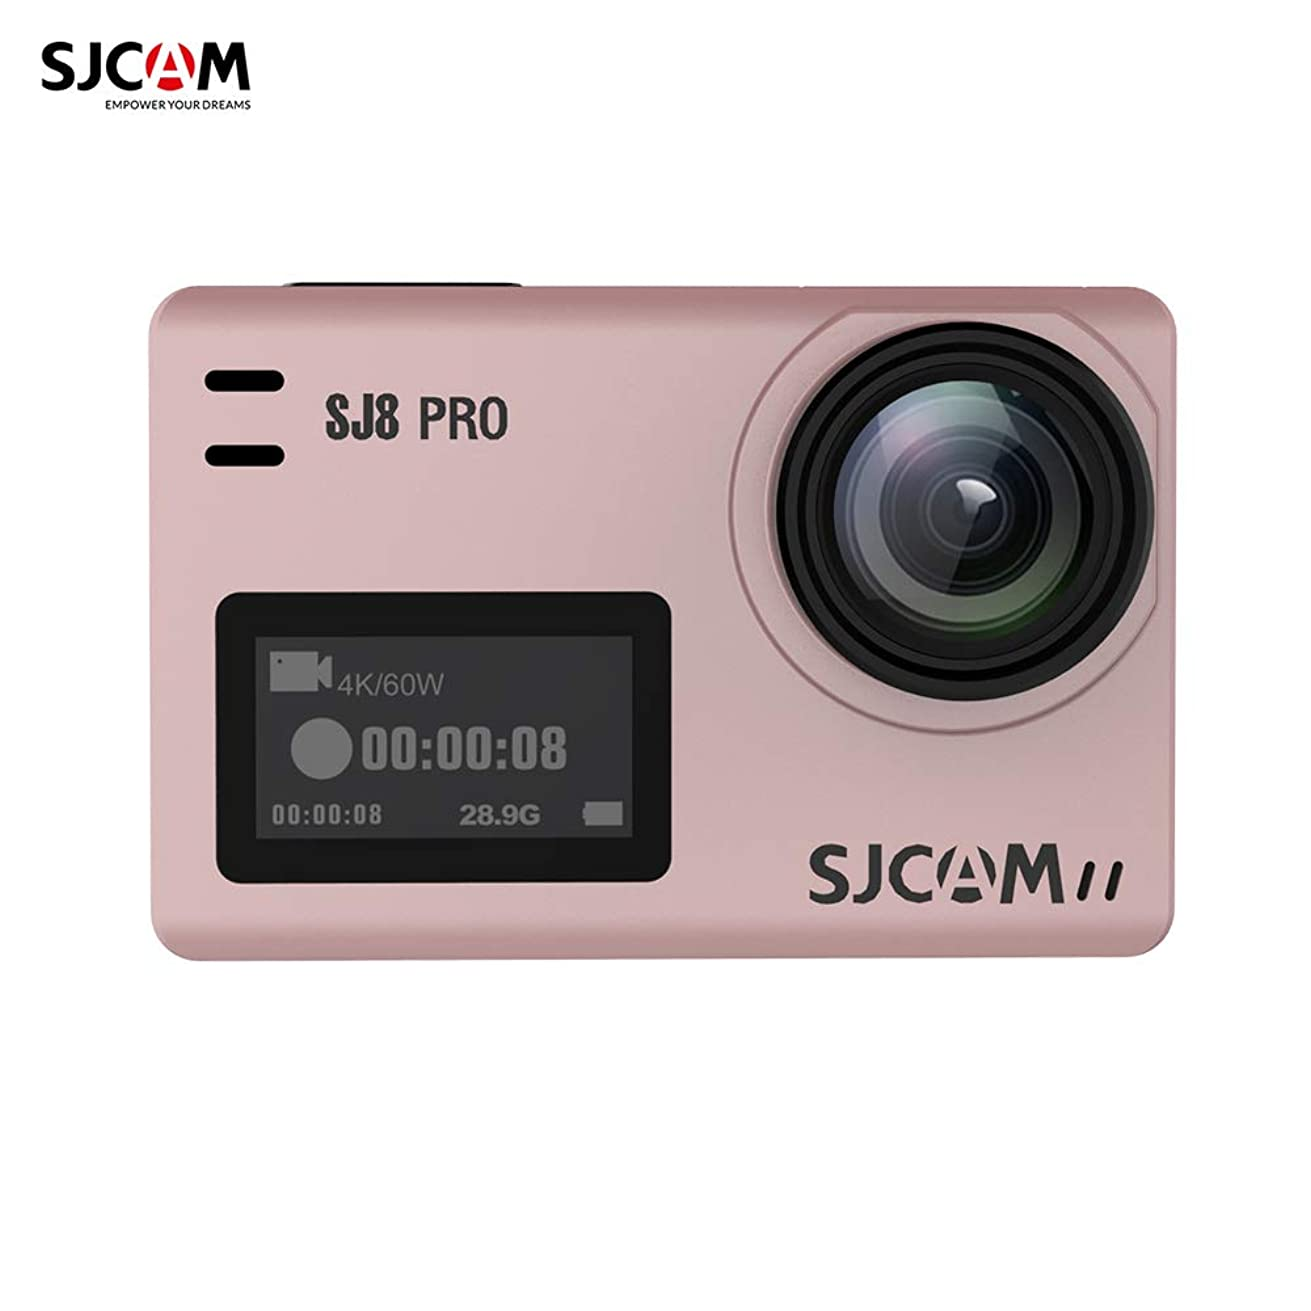 Leslaur SJCAM SJ8 PRO Action Camera 4K/60FPS WiFi Sports Cam 2.3 Inch Touch Screen with 170° Wide Angle EIS 8X Digital Zoom Waterproof Camera Rose Gold